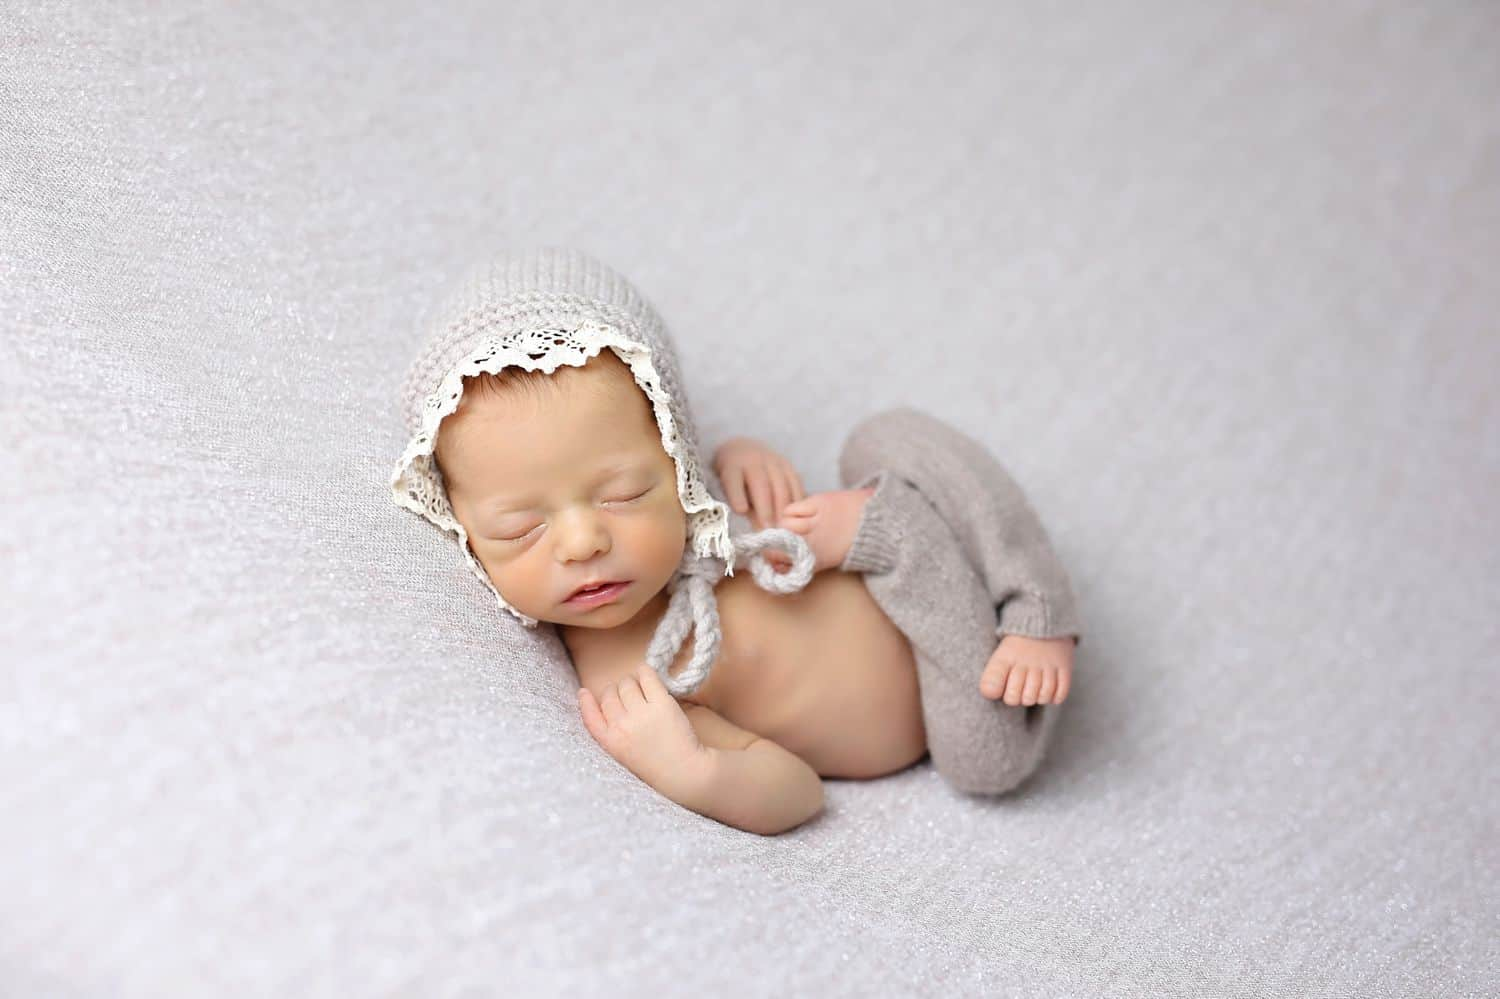 How To Attract New Clients In 3 Bold Business Moves: Baby in neutrals by Cassie Clayshulte